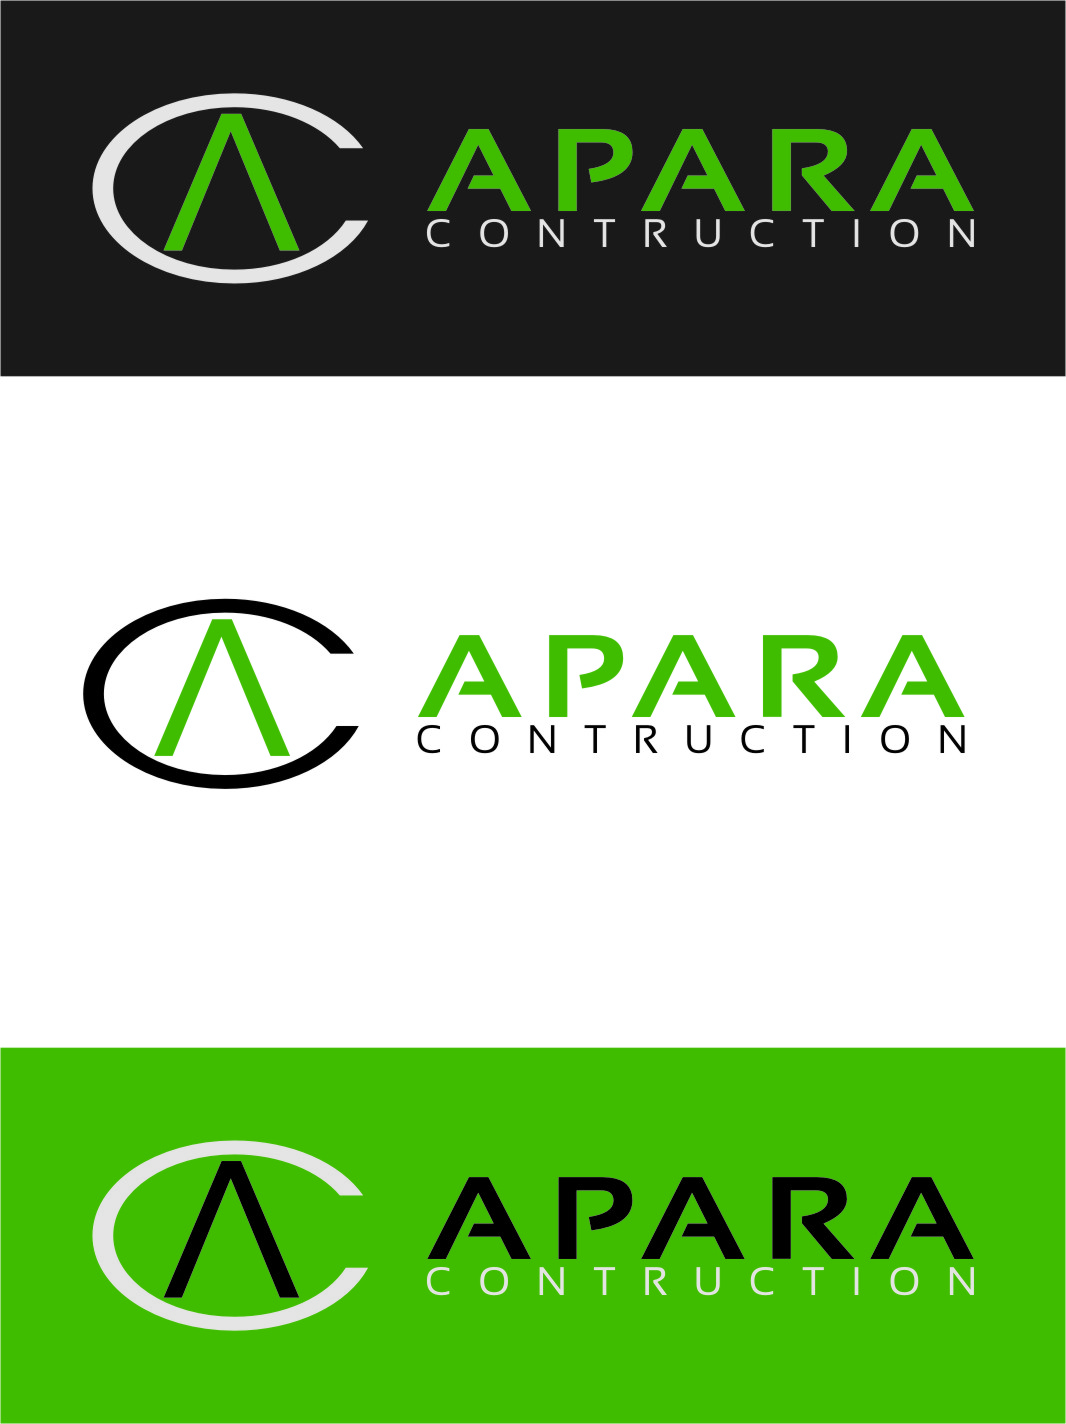 Logo Design by RasYa Muhammad Athaya - Entry No. 33 in the Logo Design Contest Apara Construction Logo Design.